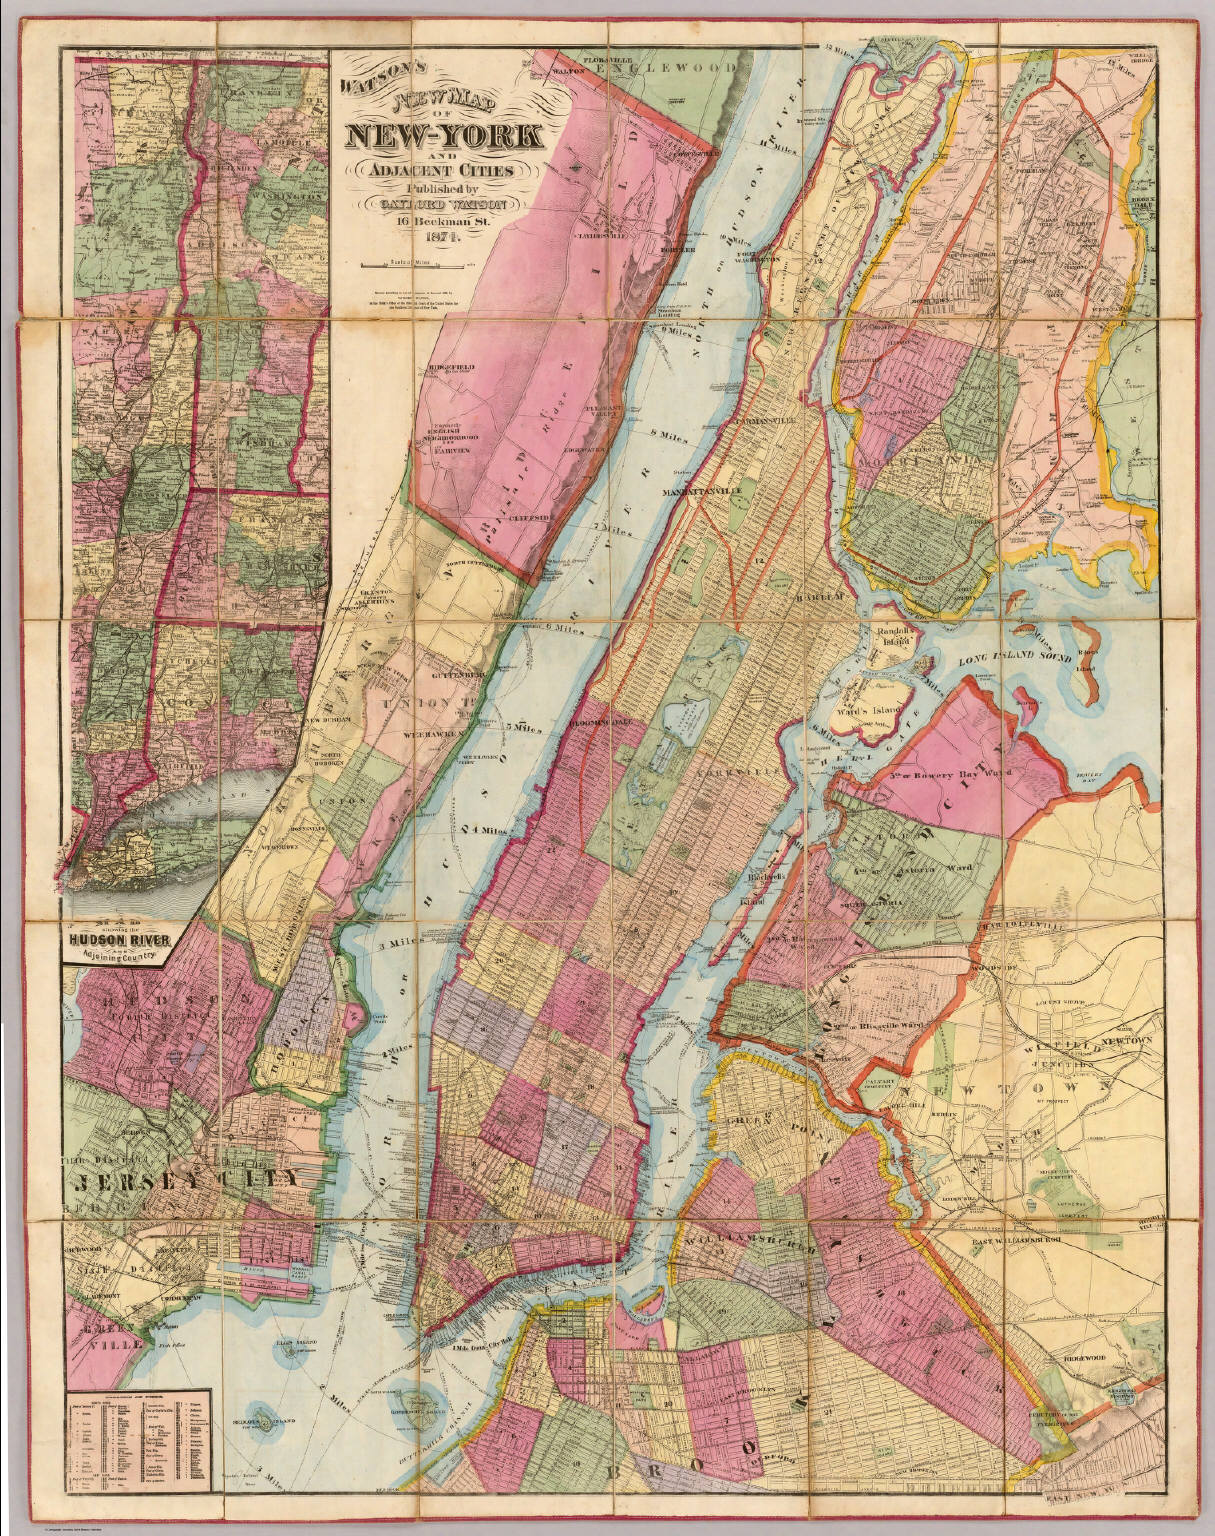 Watsons New Map Of NewYork And Adjacent Cities David Rumsey - New york map hudson river